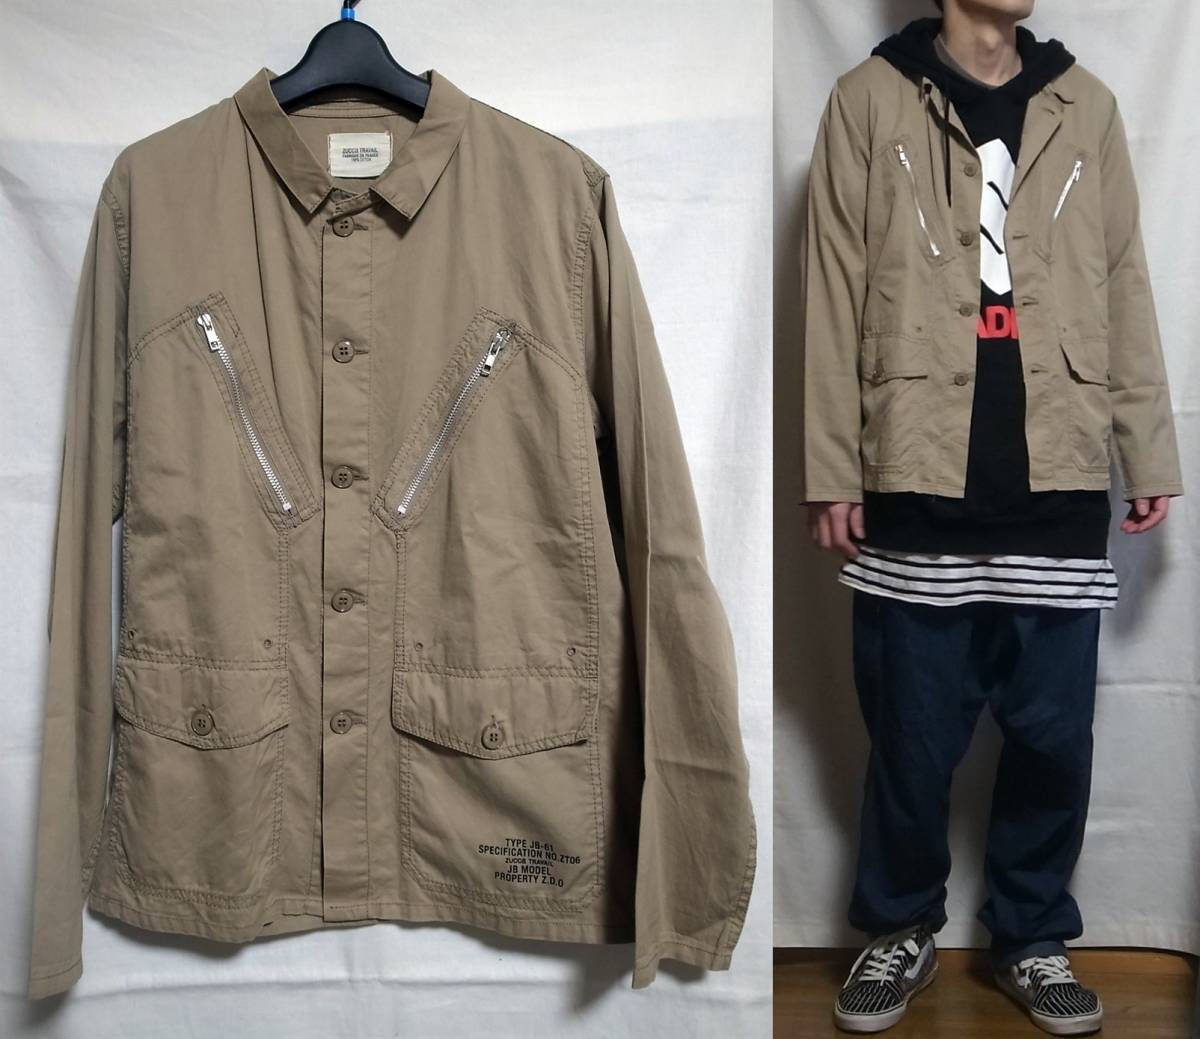 ☆That buy☆Zucca TRAVAIL Army Shirt beige size cut army shirt work shirt work shirt beige size 1